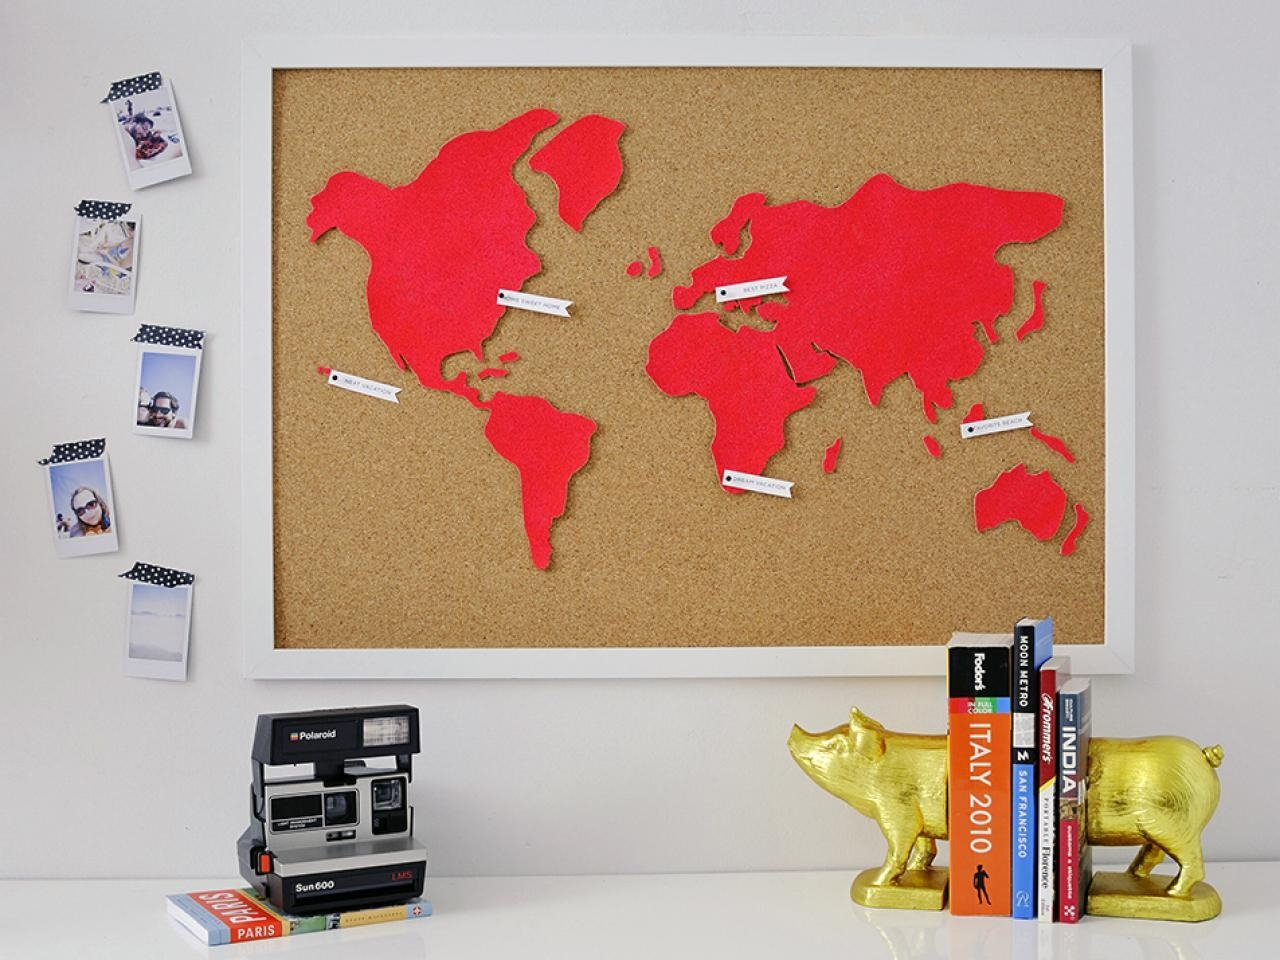 Diy Wall Art: Make A Custom Corkboard World Map | Hgtv Pertaining To Diy Origami Wall Art (Image 5 of 20)